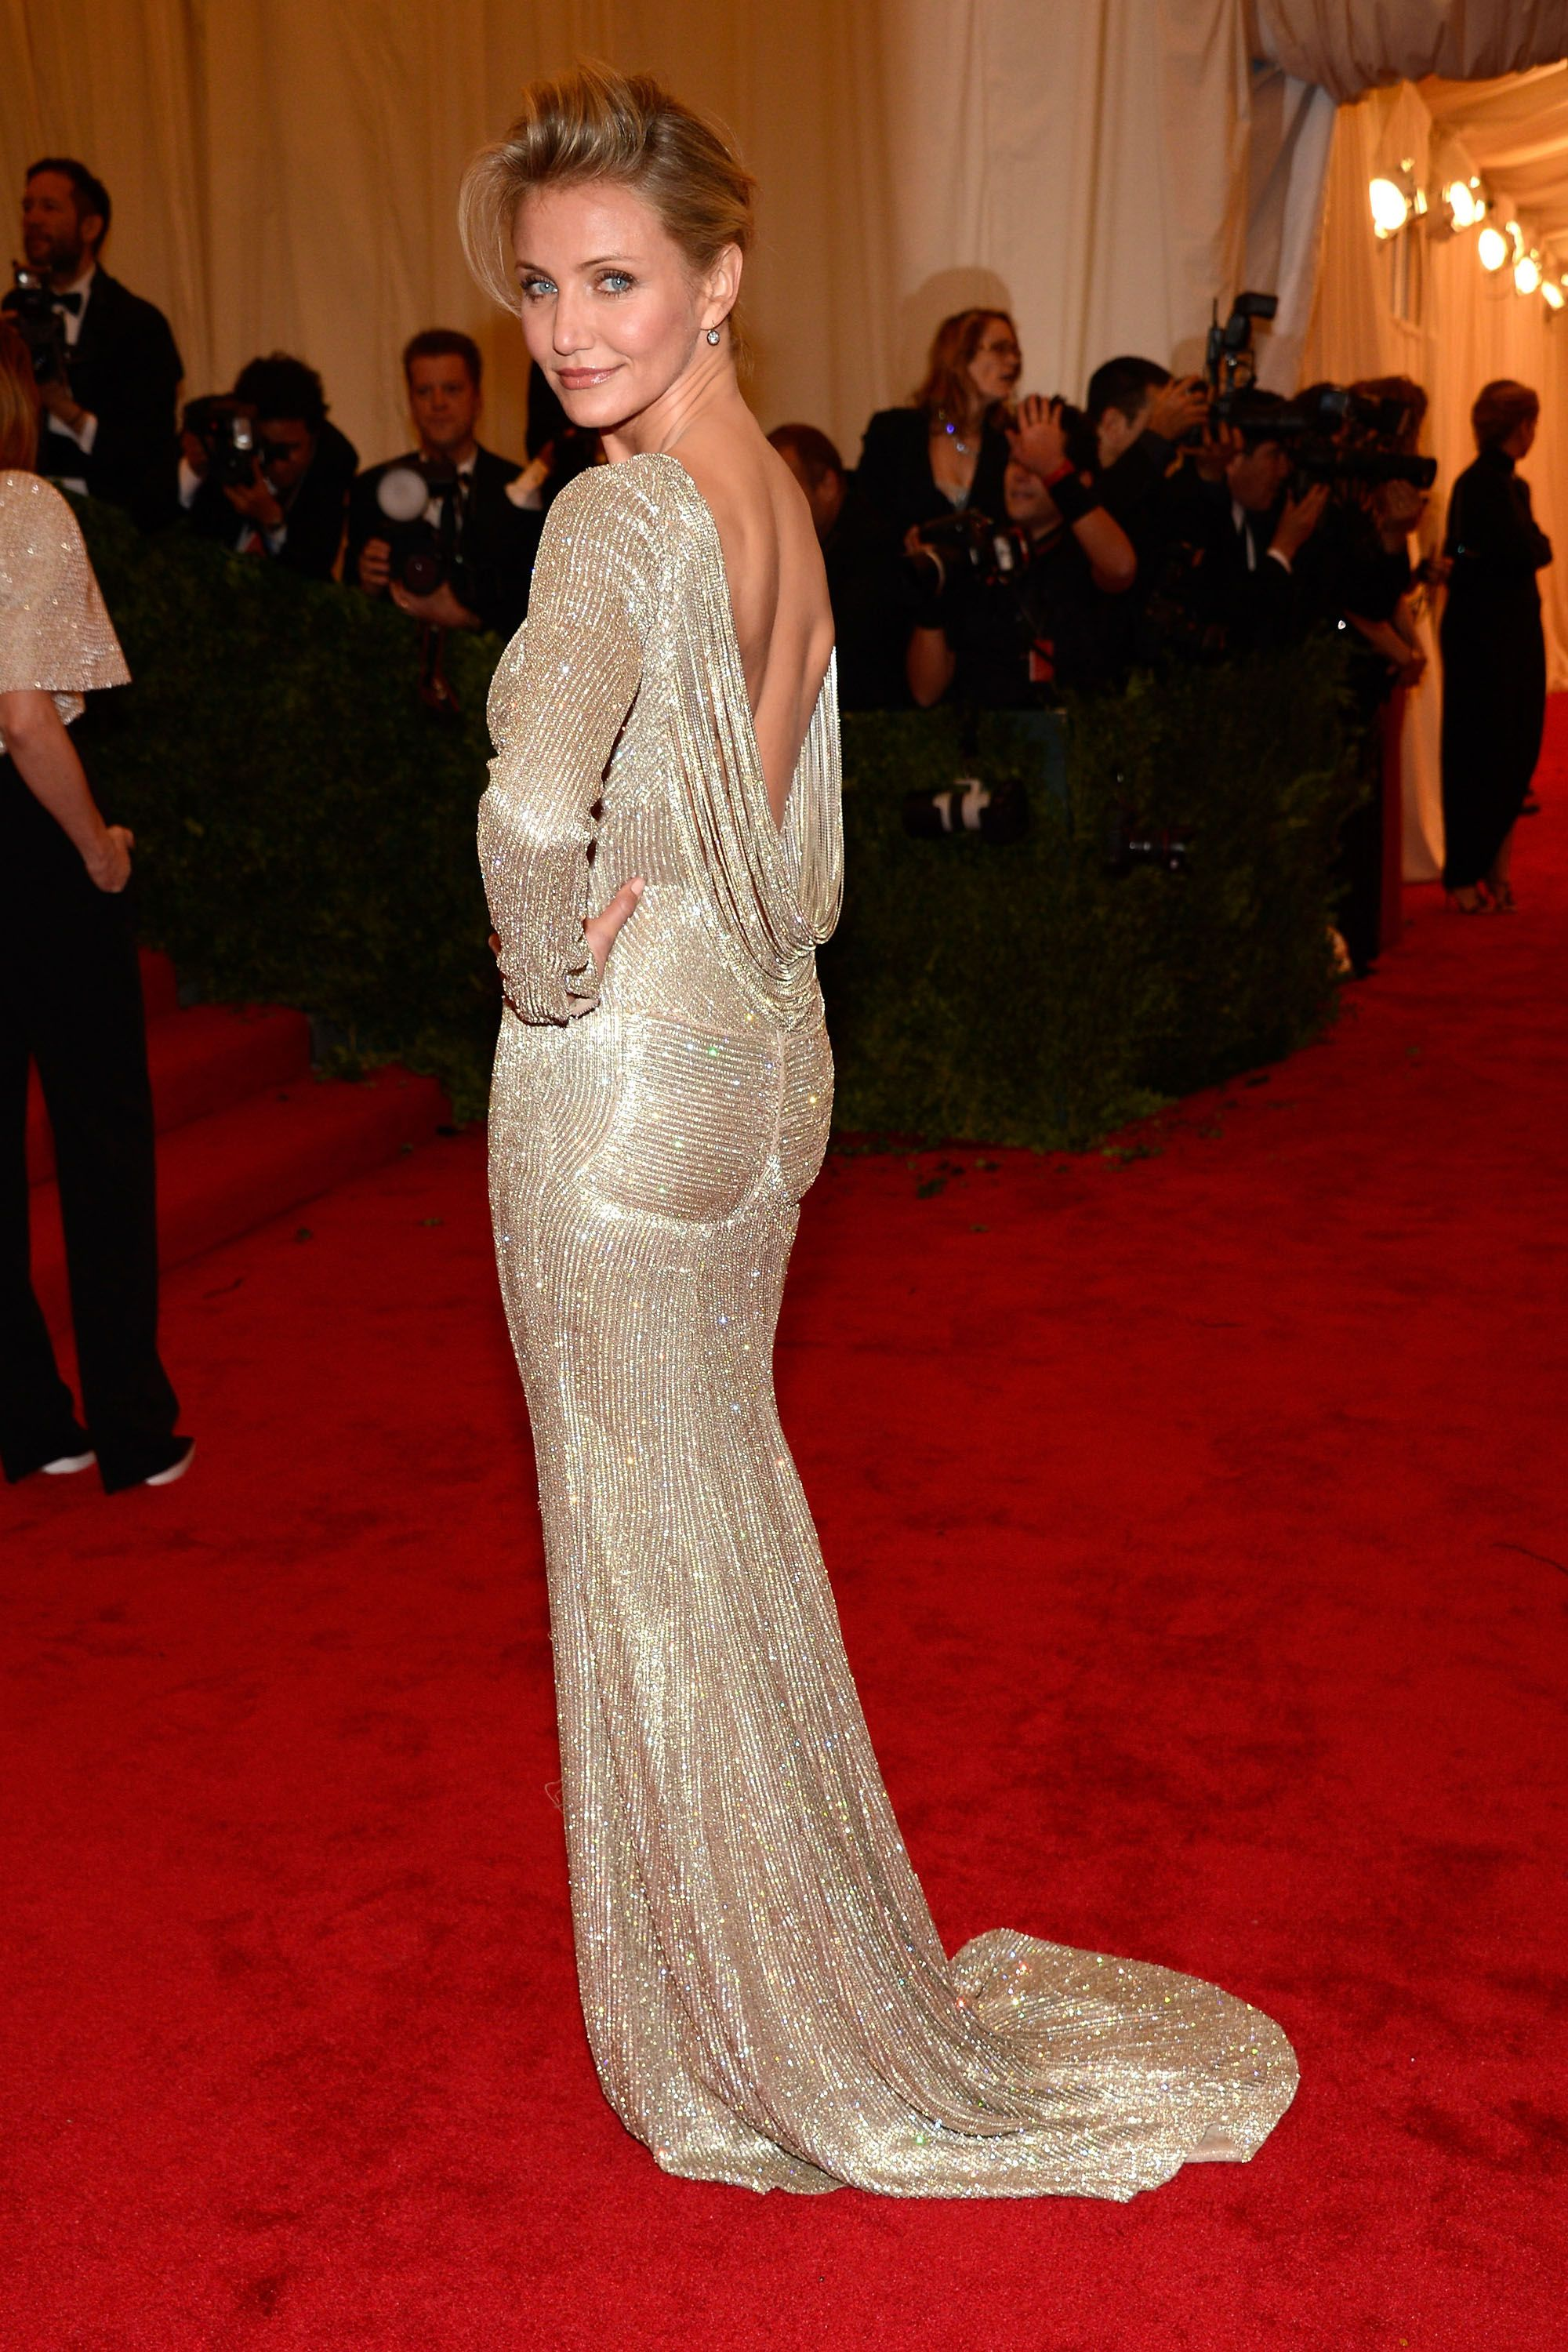 The Most Glamorous Trains At Met Gala Fashion Moments